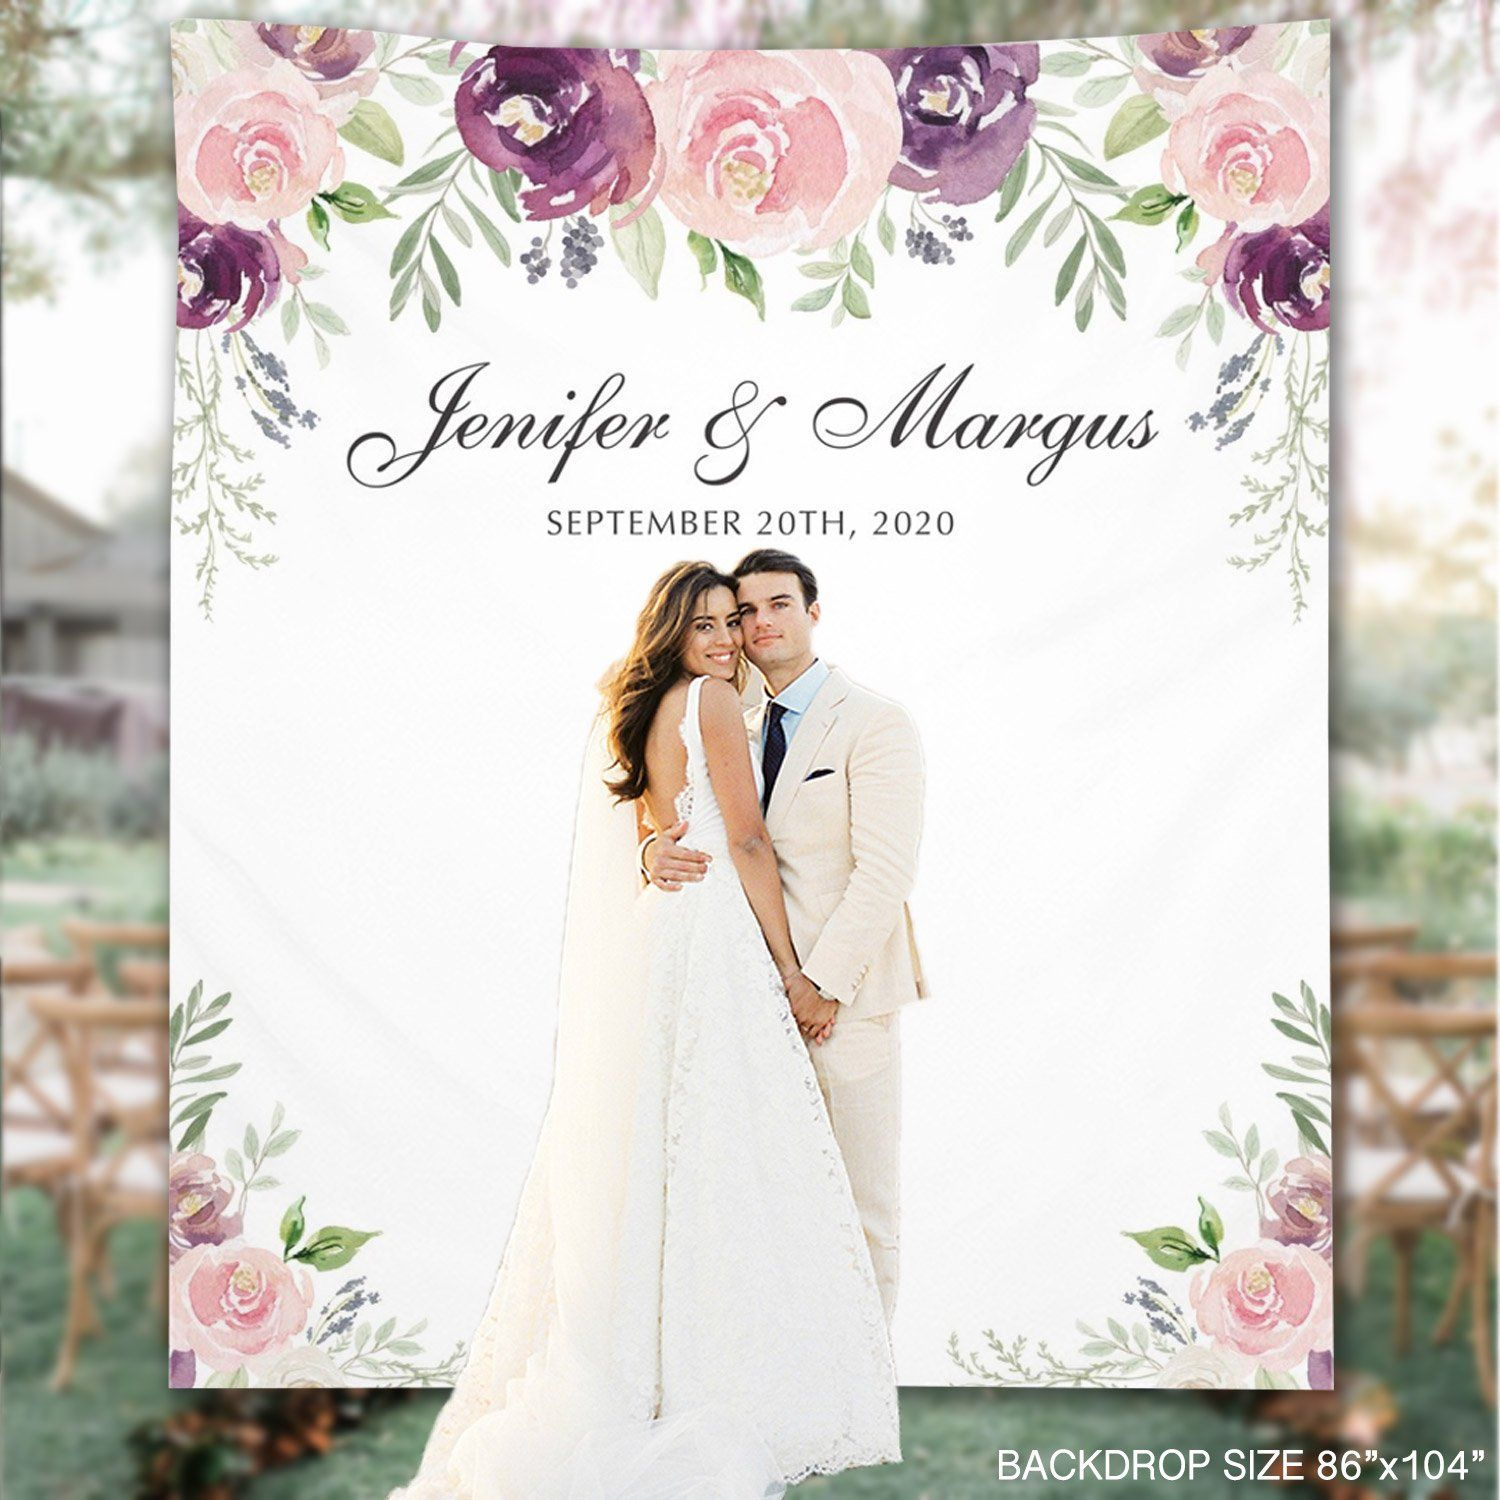 Wedding Backdrop Plum Floral Custom Wedding Backdrop Photo Booth